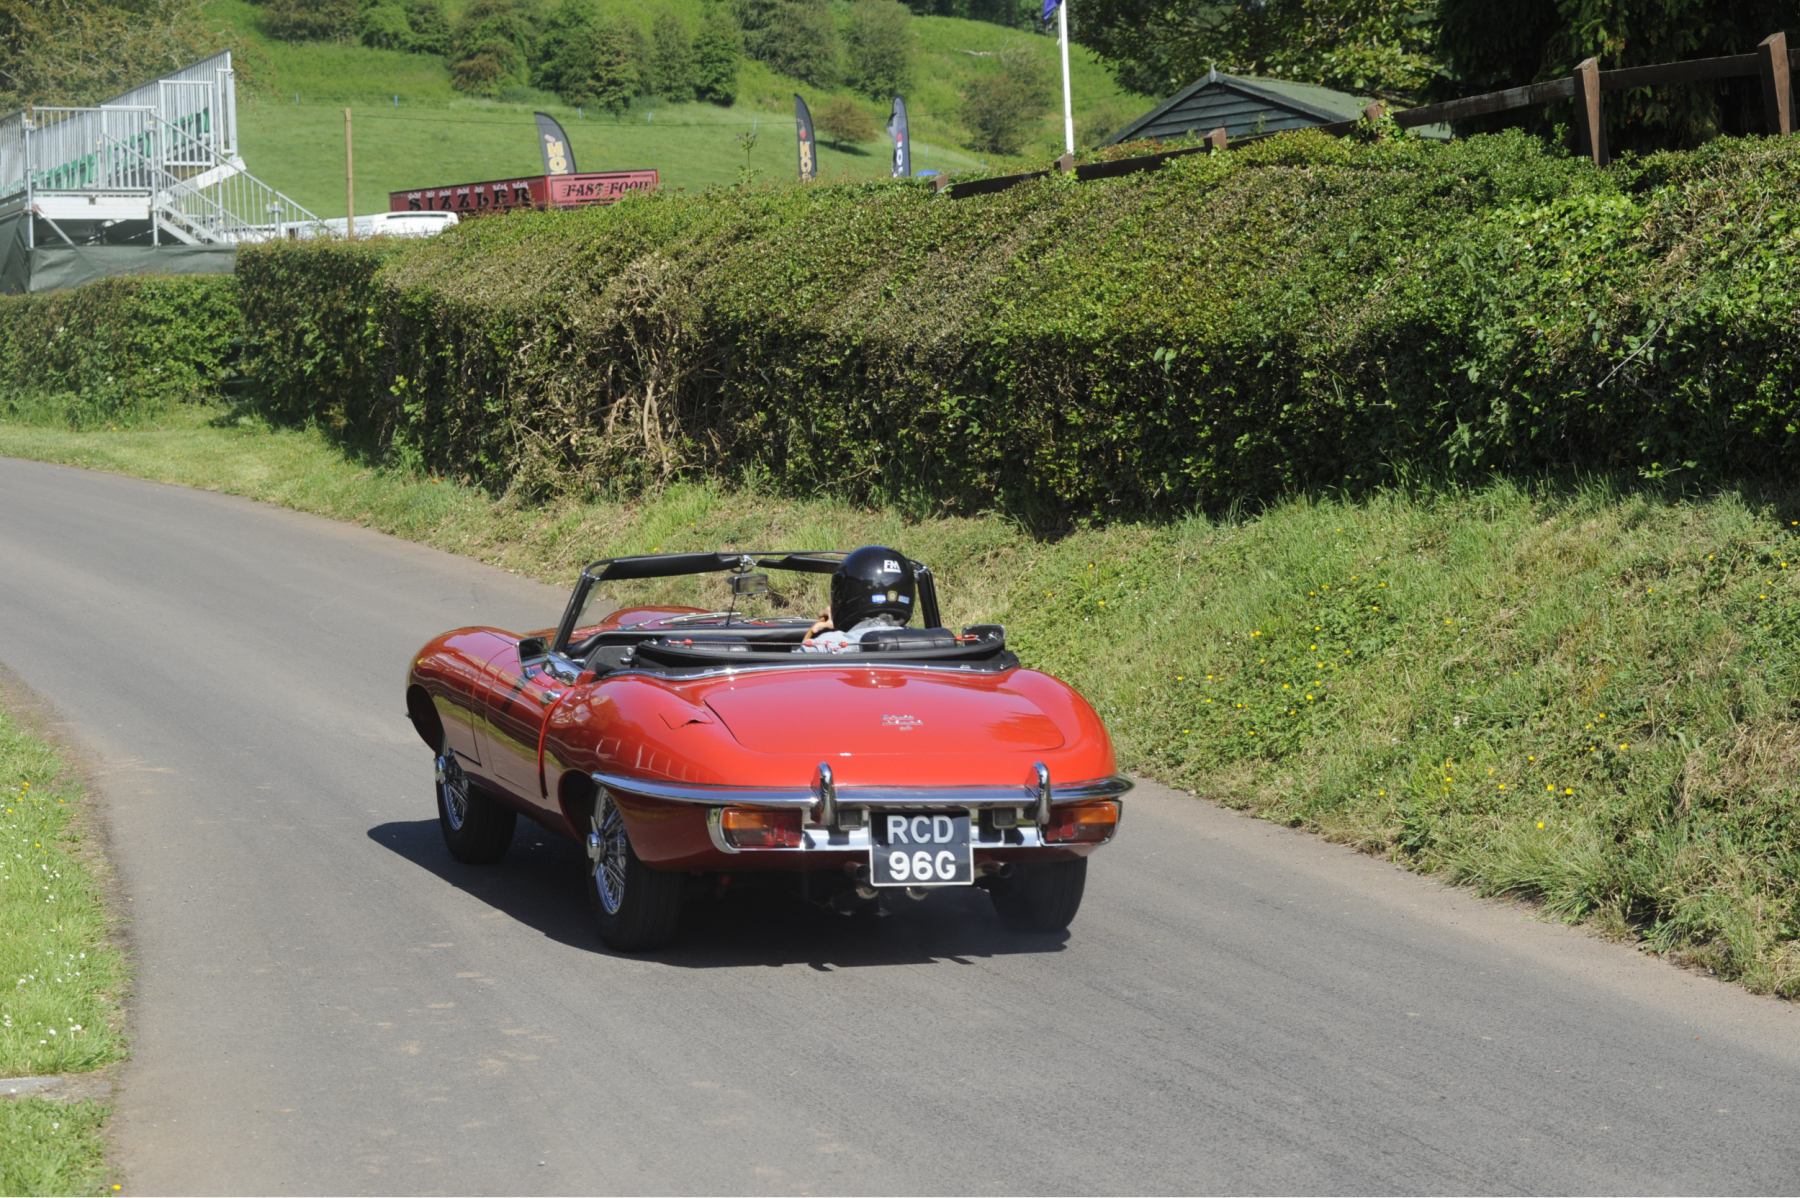 E-type-60-Saturday-photo-by-Abigail-Humphries-22